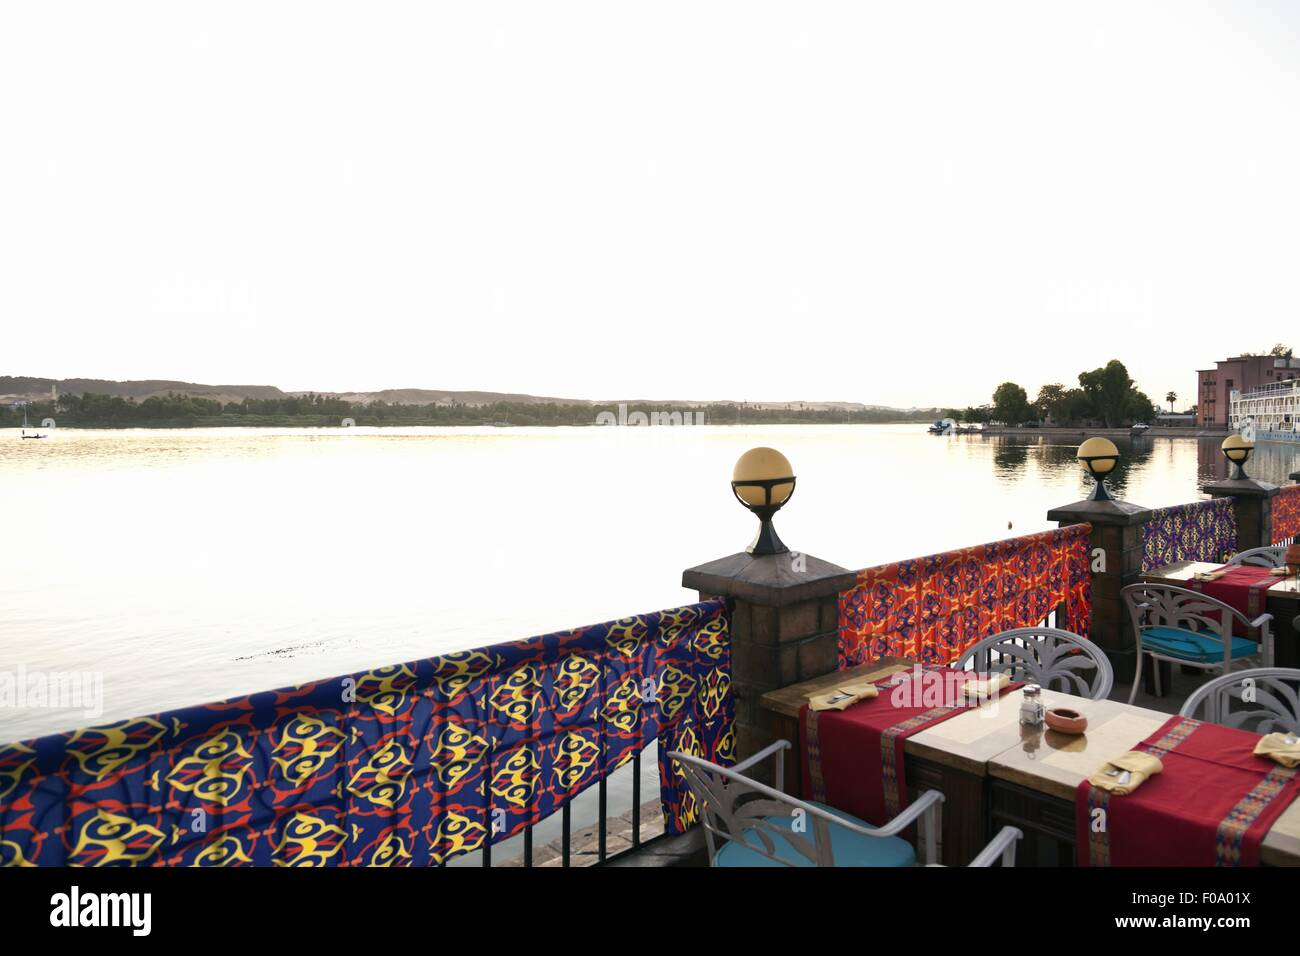 View of river and table laid on the terrace of Aswan Hotel, Aswan, Egypt - Stock Image